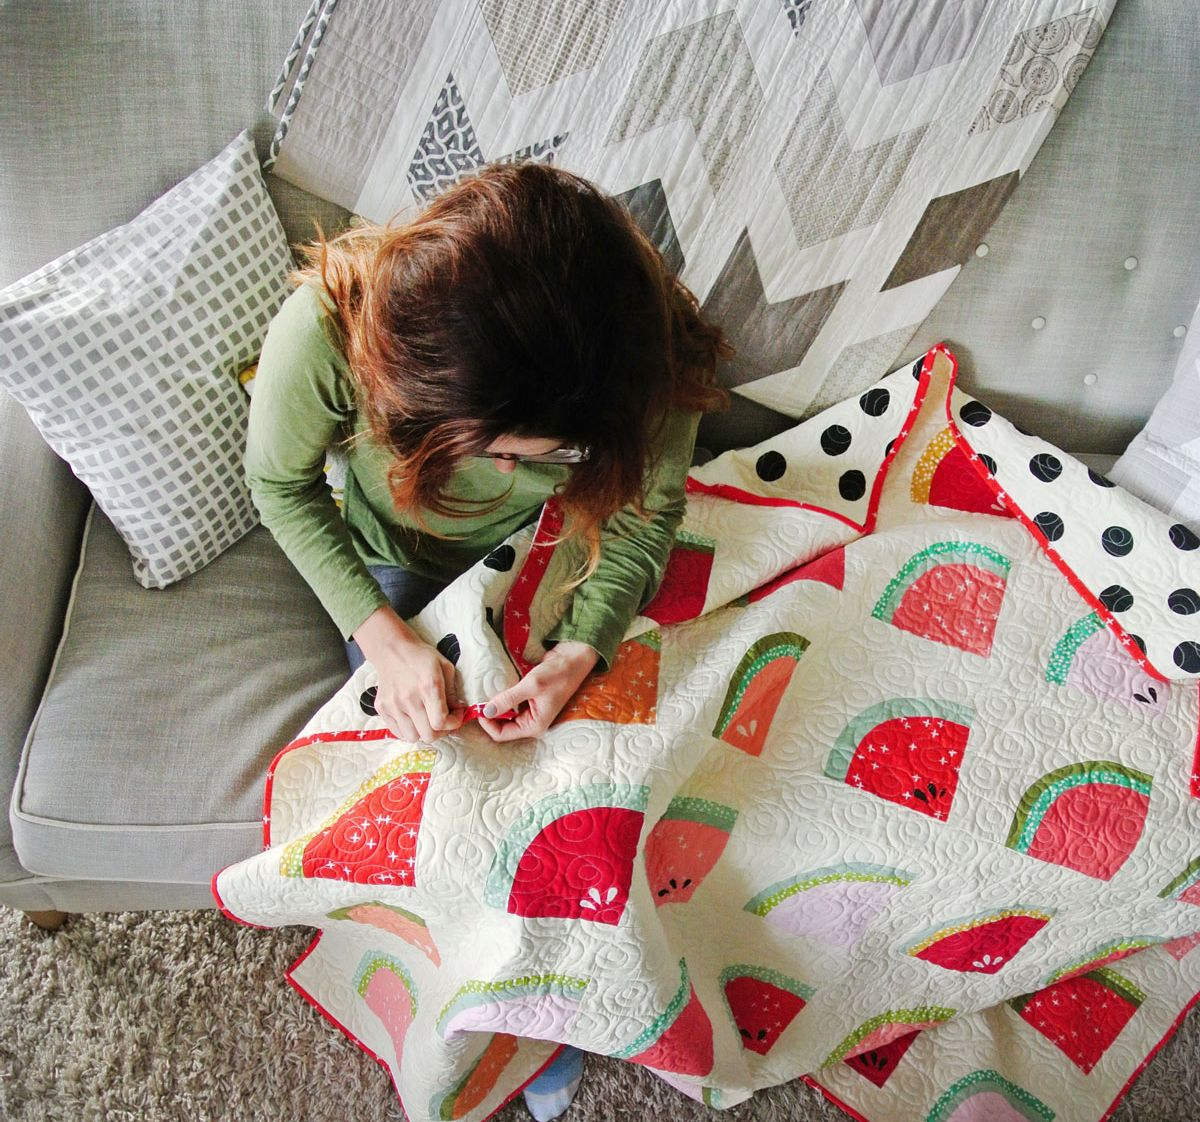 How To Sew Binding On A Quilt (VIDEO